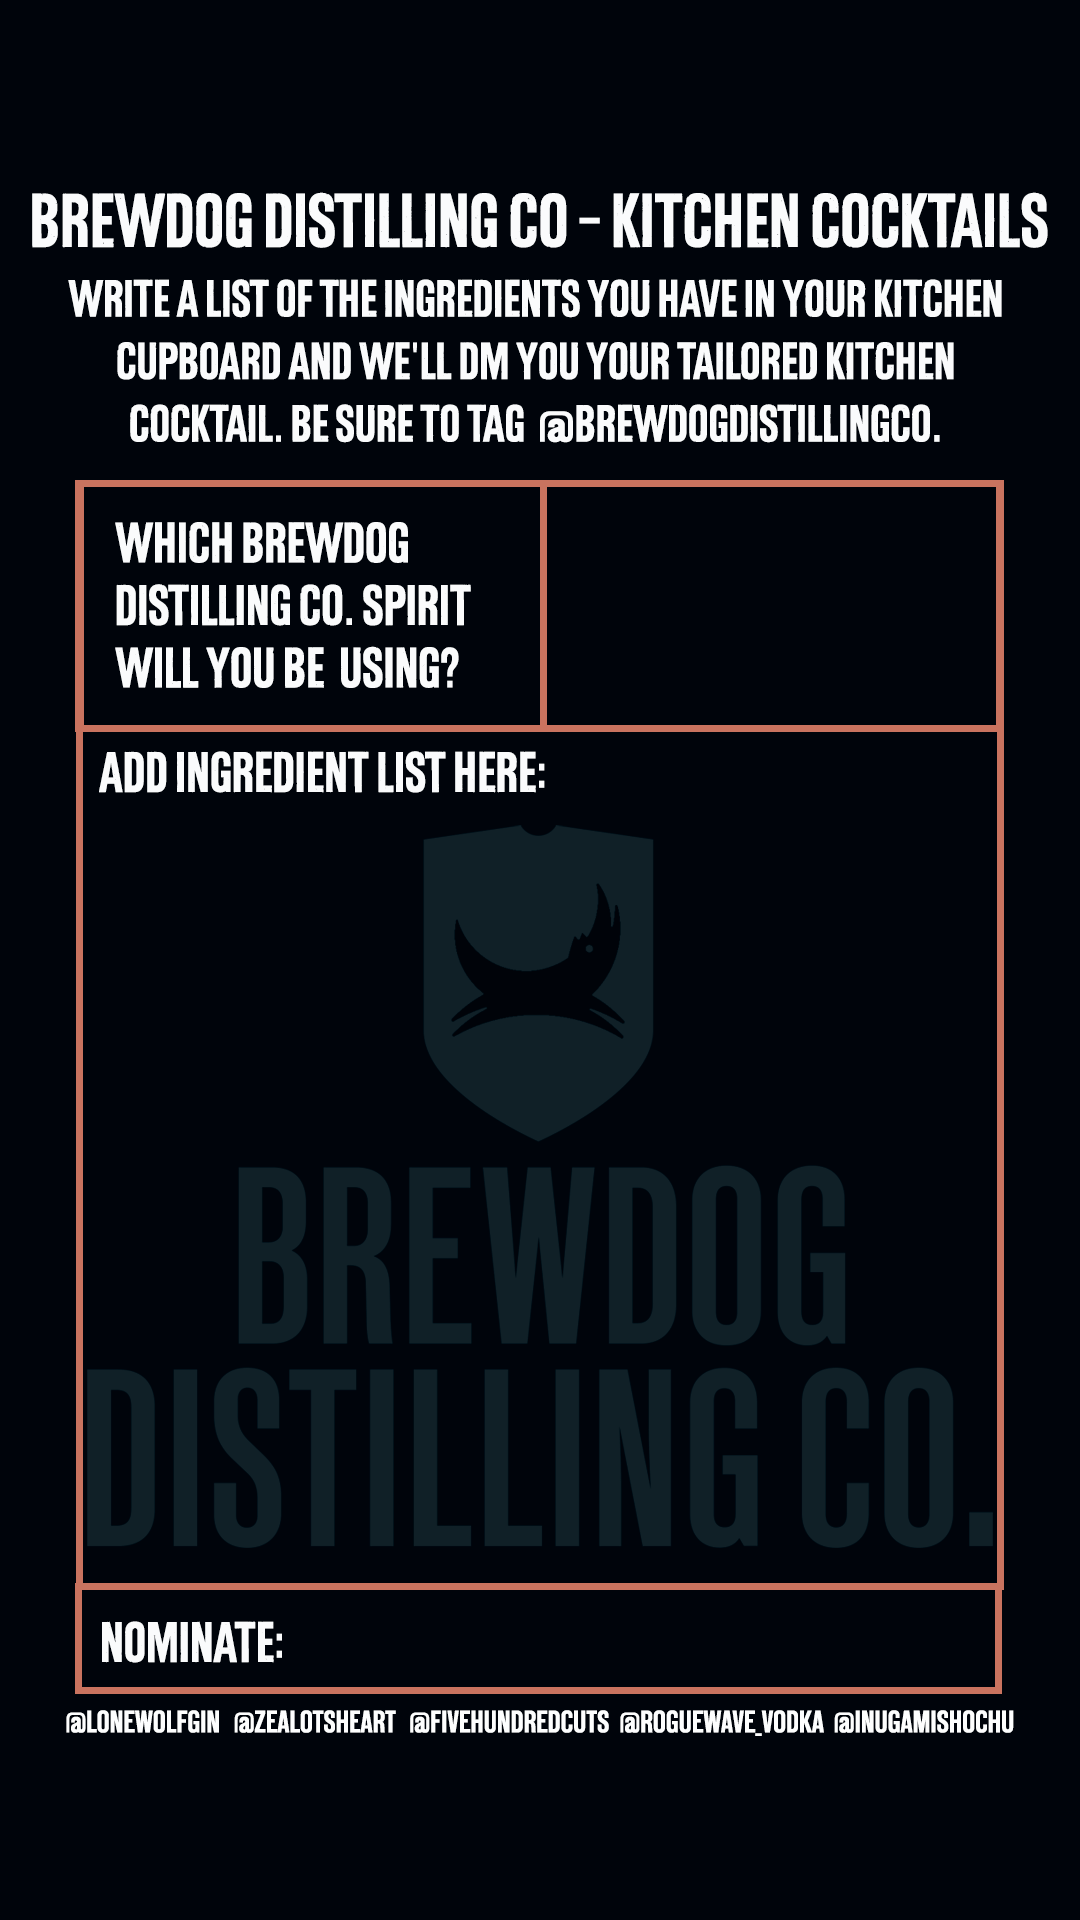 BrewDog Distilling Co Instagram bartender concierge - Kitchen Cocktails